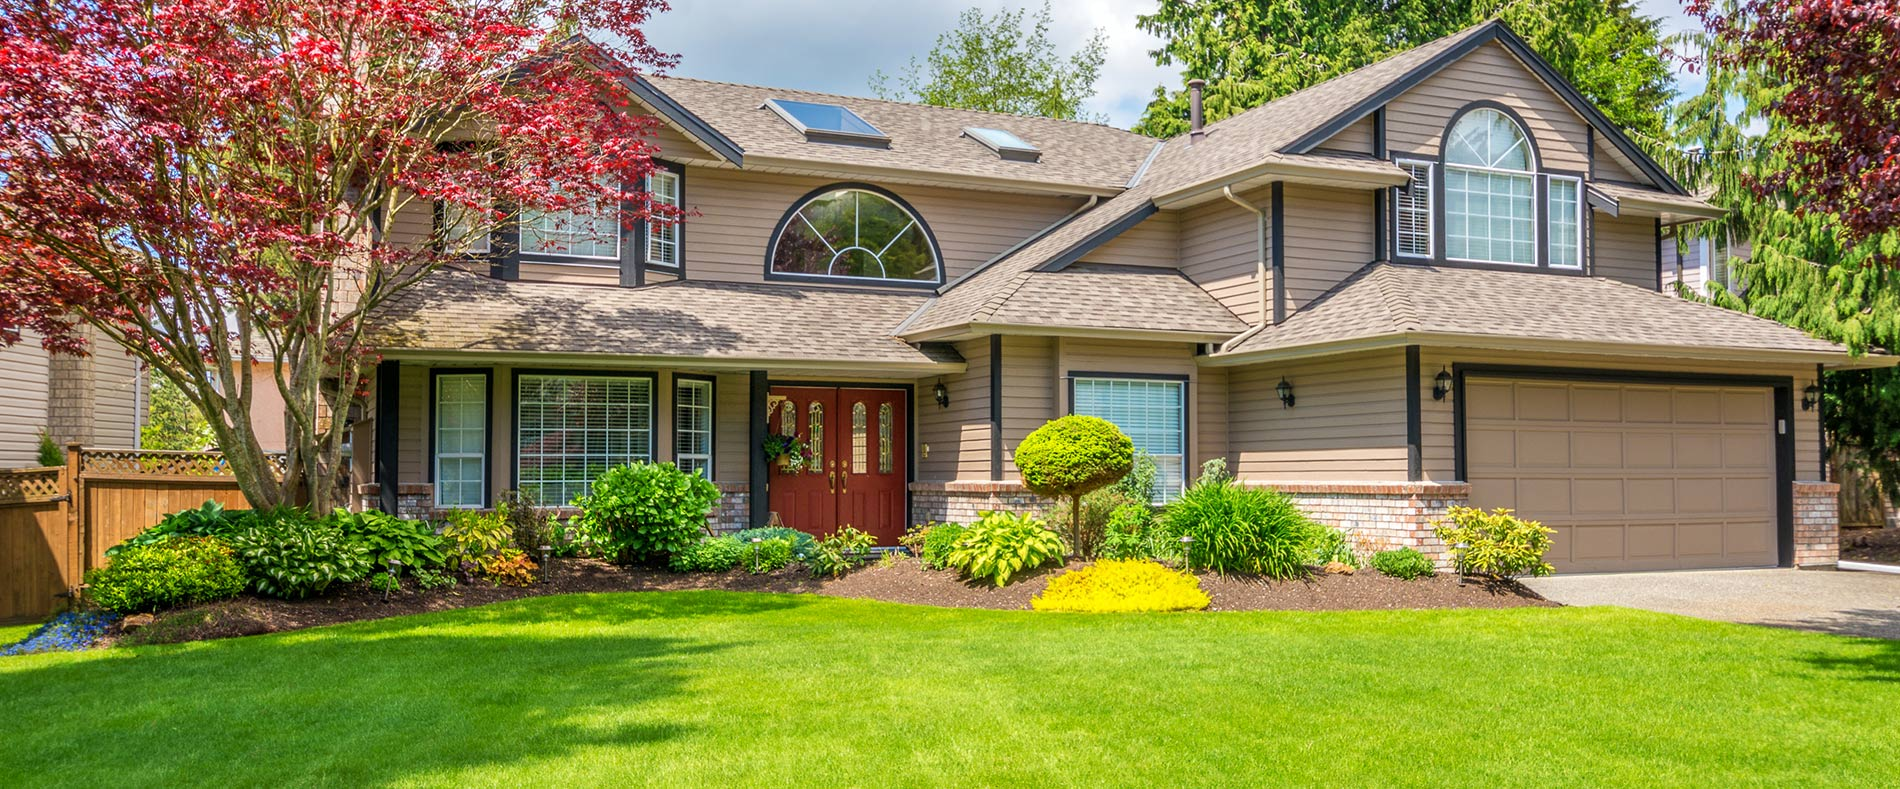 Home Remodeling Roofing Vinyl Siding Columbia SC MTD Services